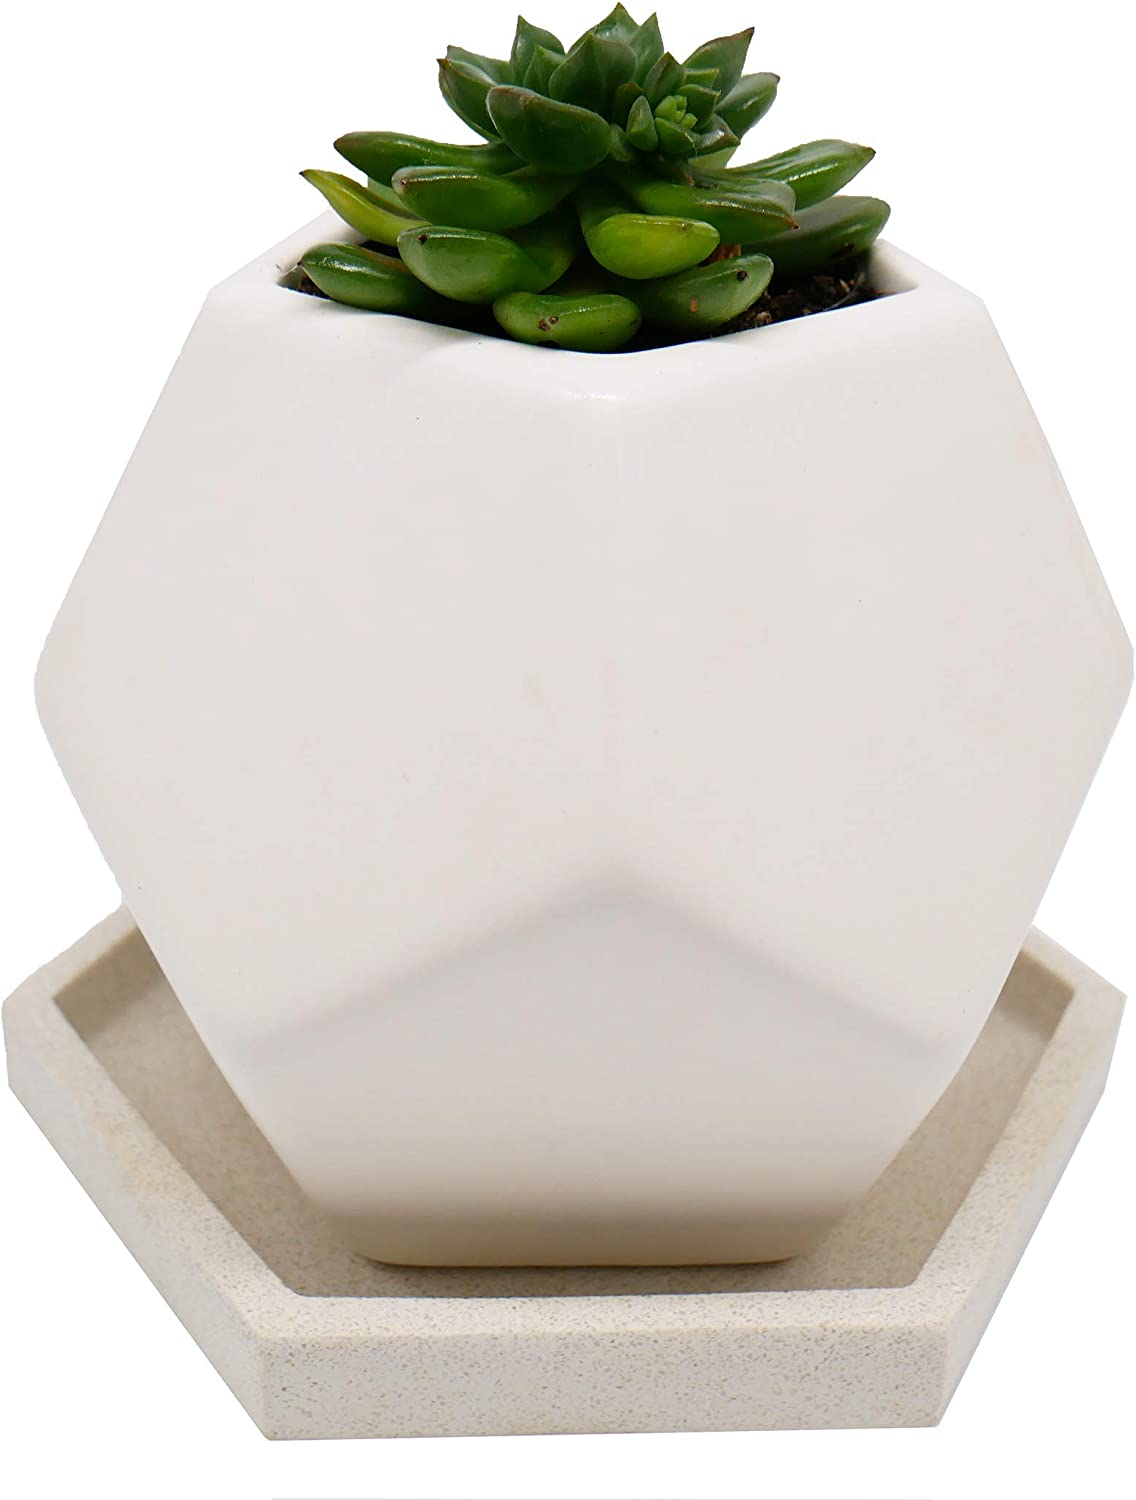 Planter Saucer for Indoor and Outdoor Plants HEXII Hexagon Plant Tray 2 Pack 6 inch